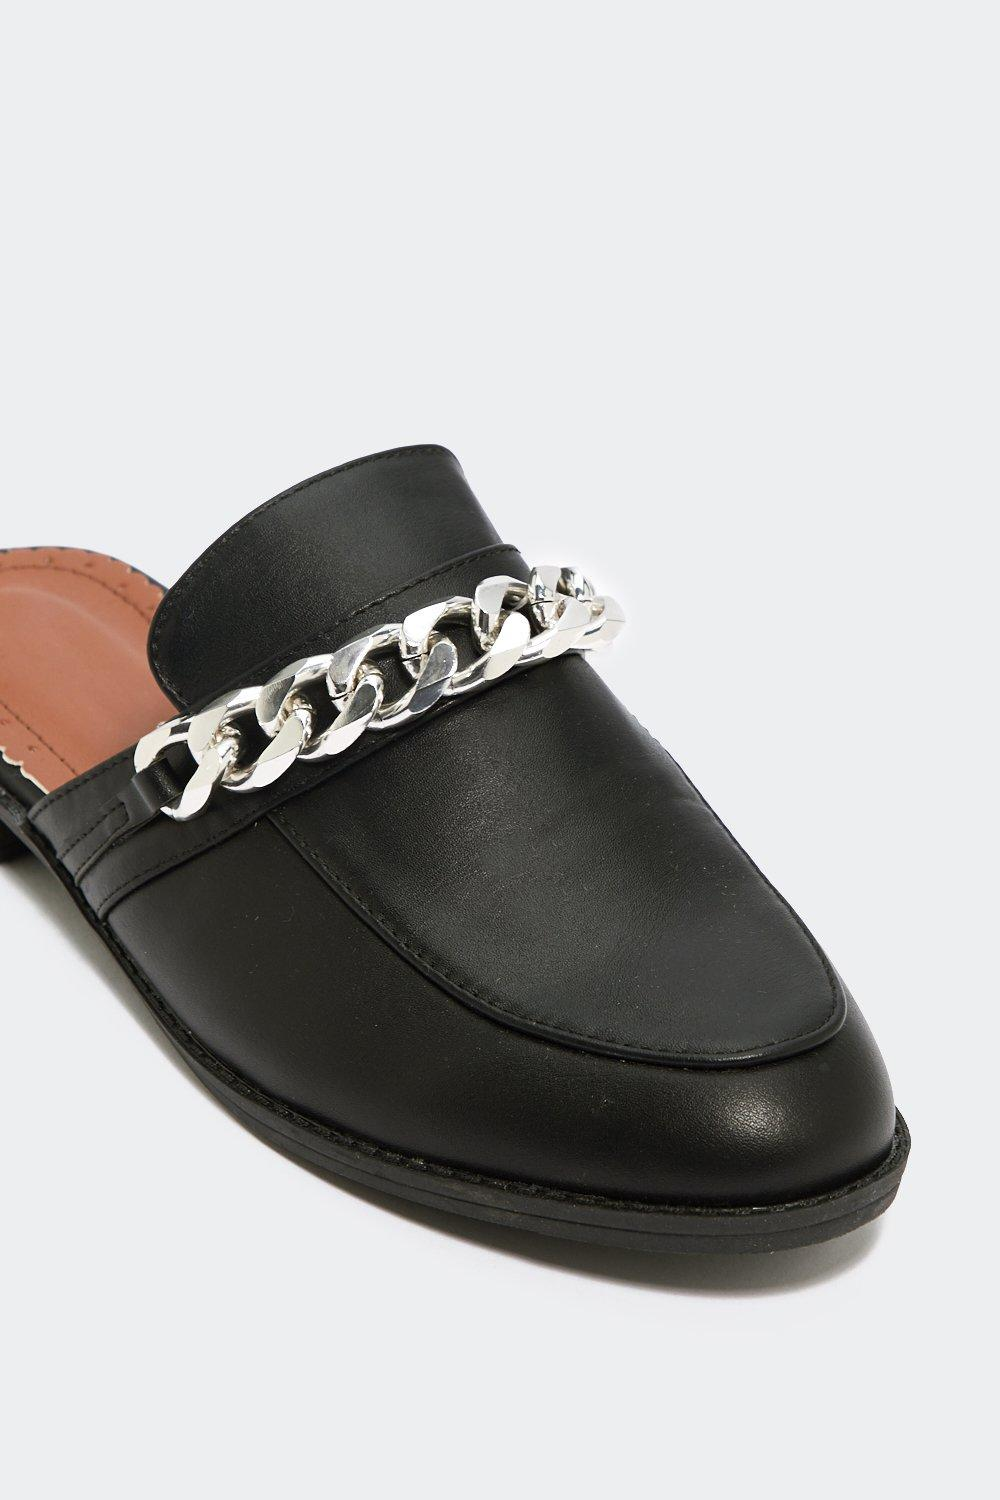 Chain Ground Loafer by Nasty Gal